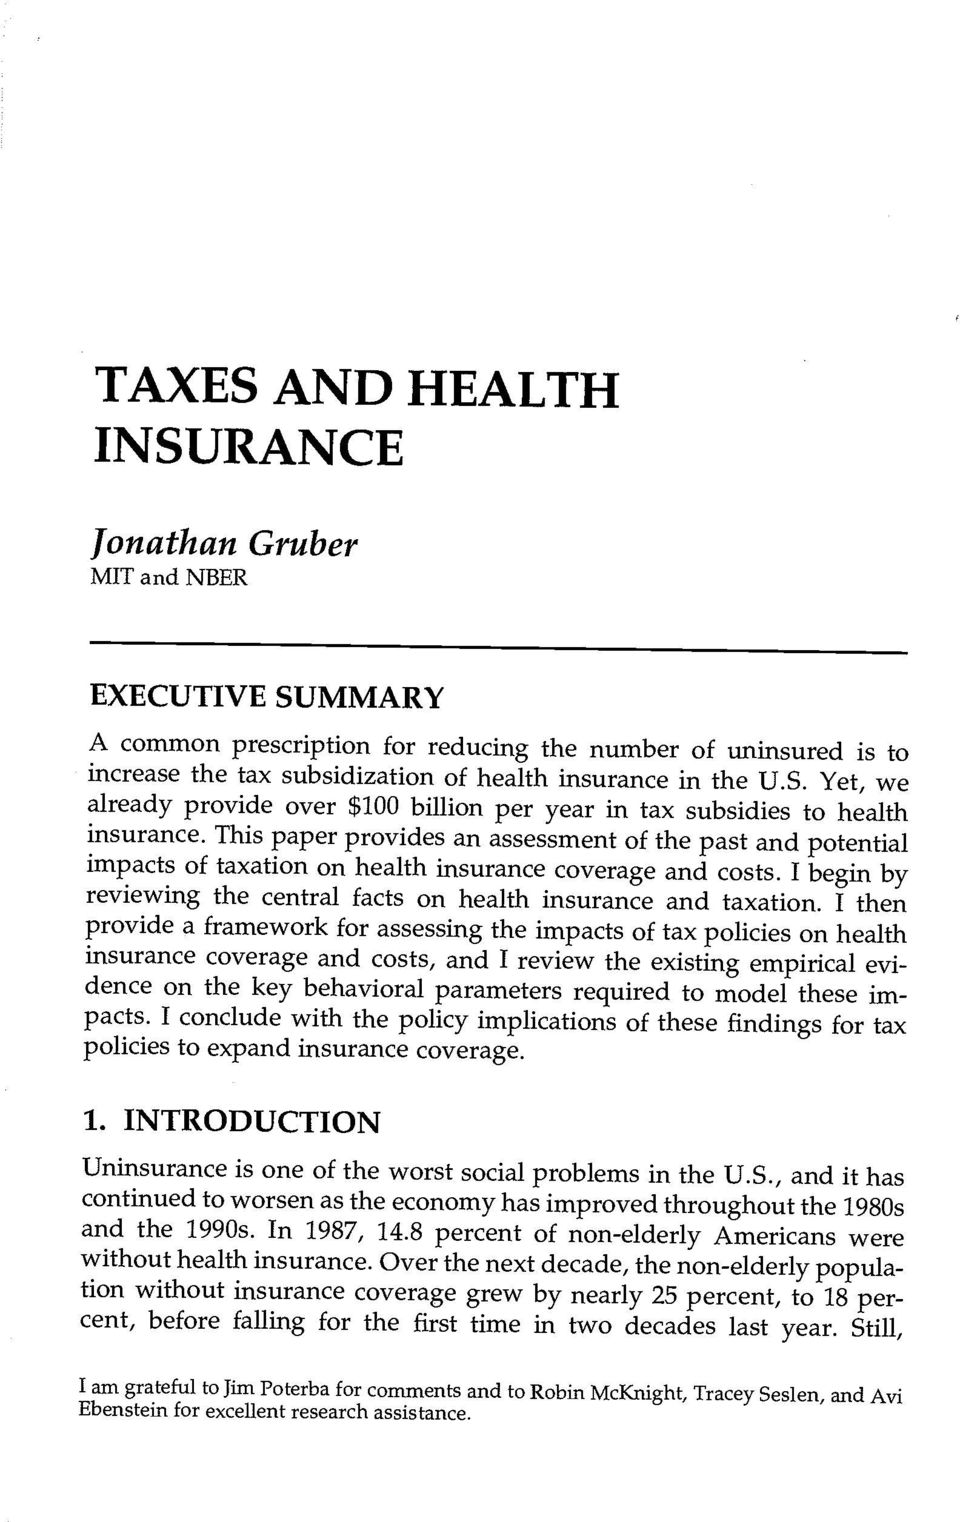 This paper provides an assessment of the past and potential impacts of taxation on health insurance coverage and costs. I begin by reviewing the central facts on health insurance and taxation.